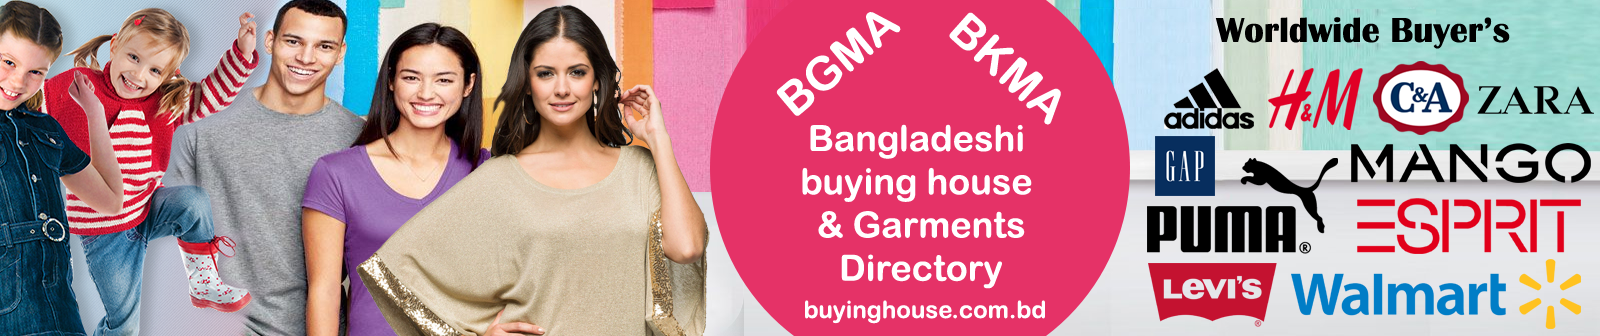 Buying House in Bangladesh | Buying Garments directory in Bangladesh